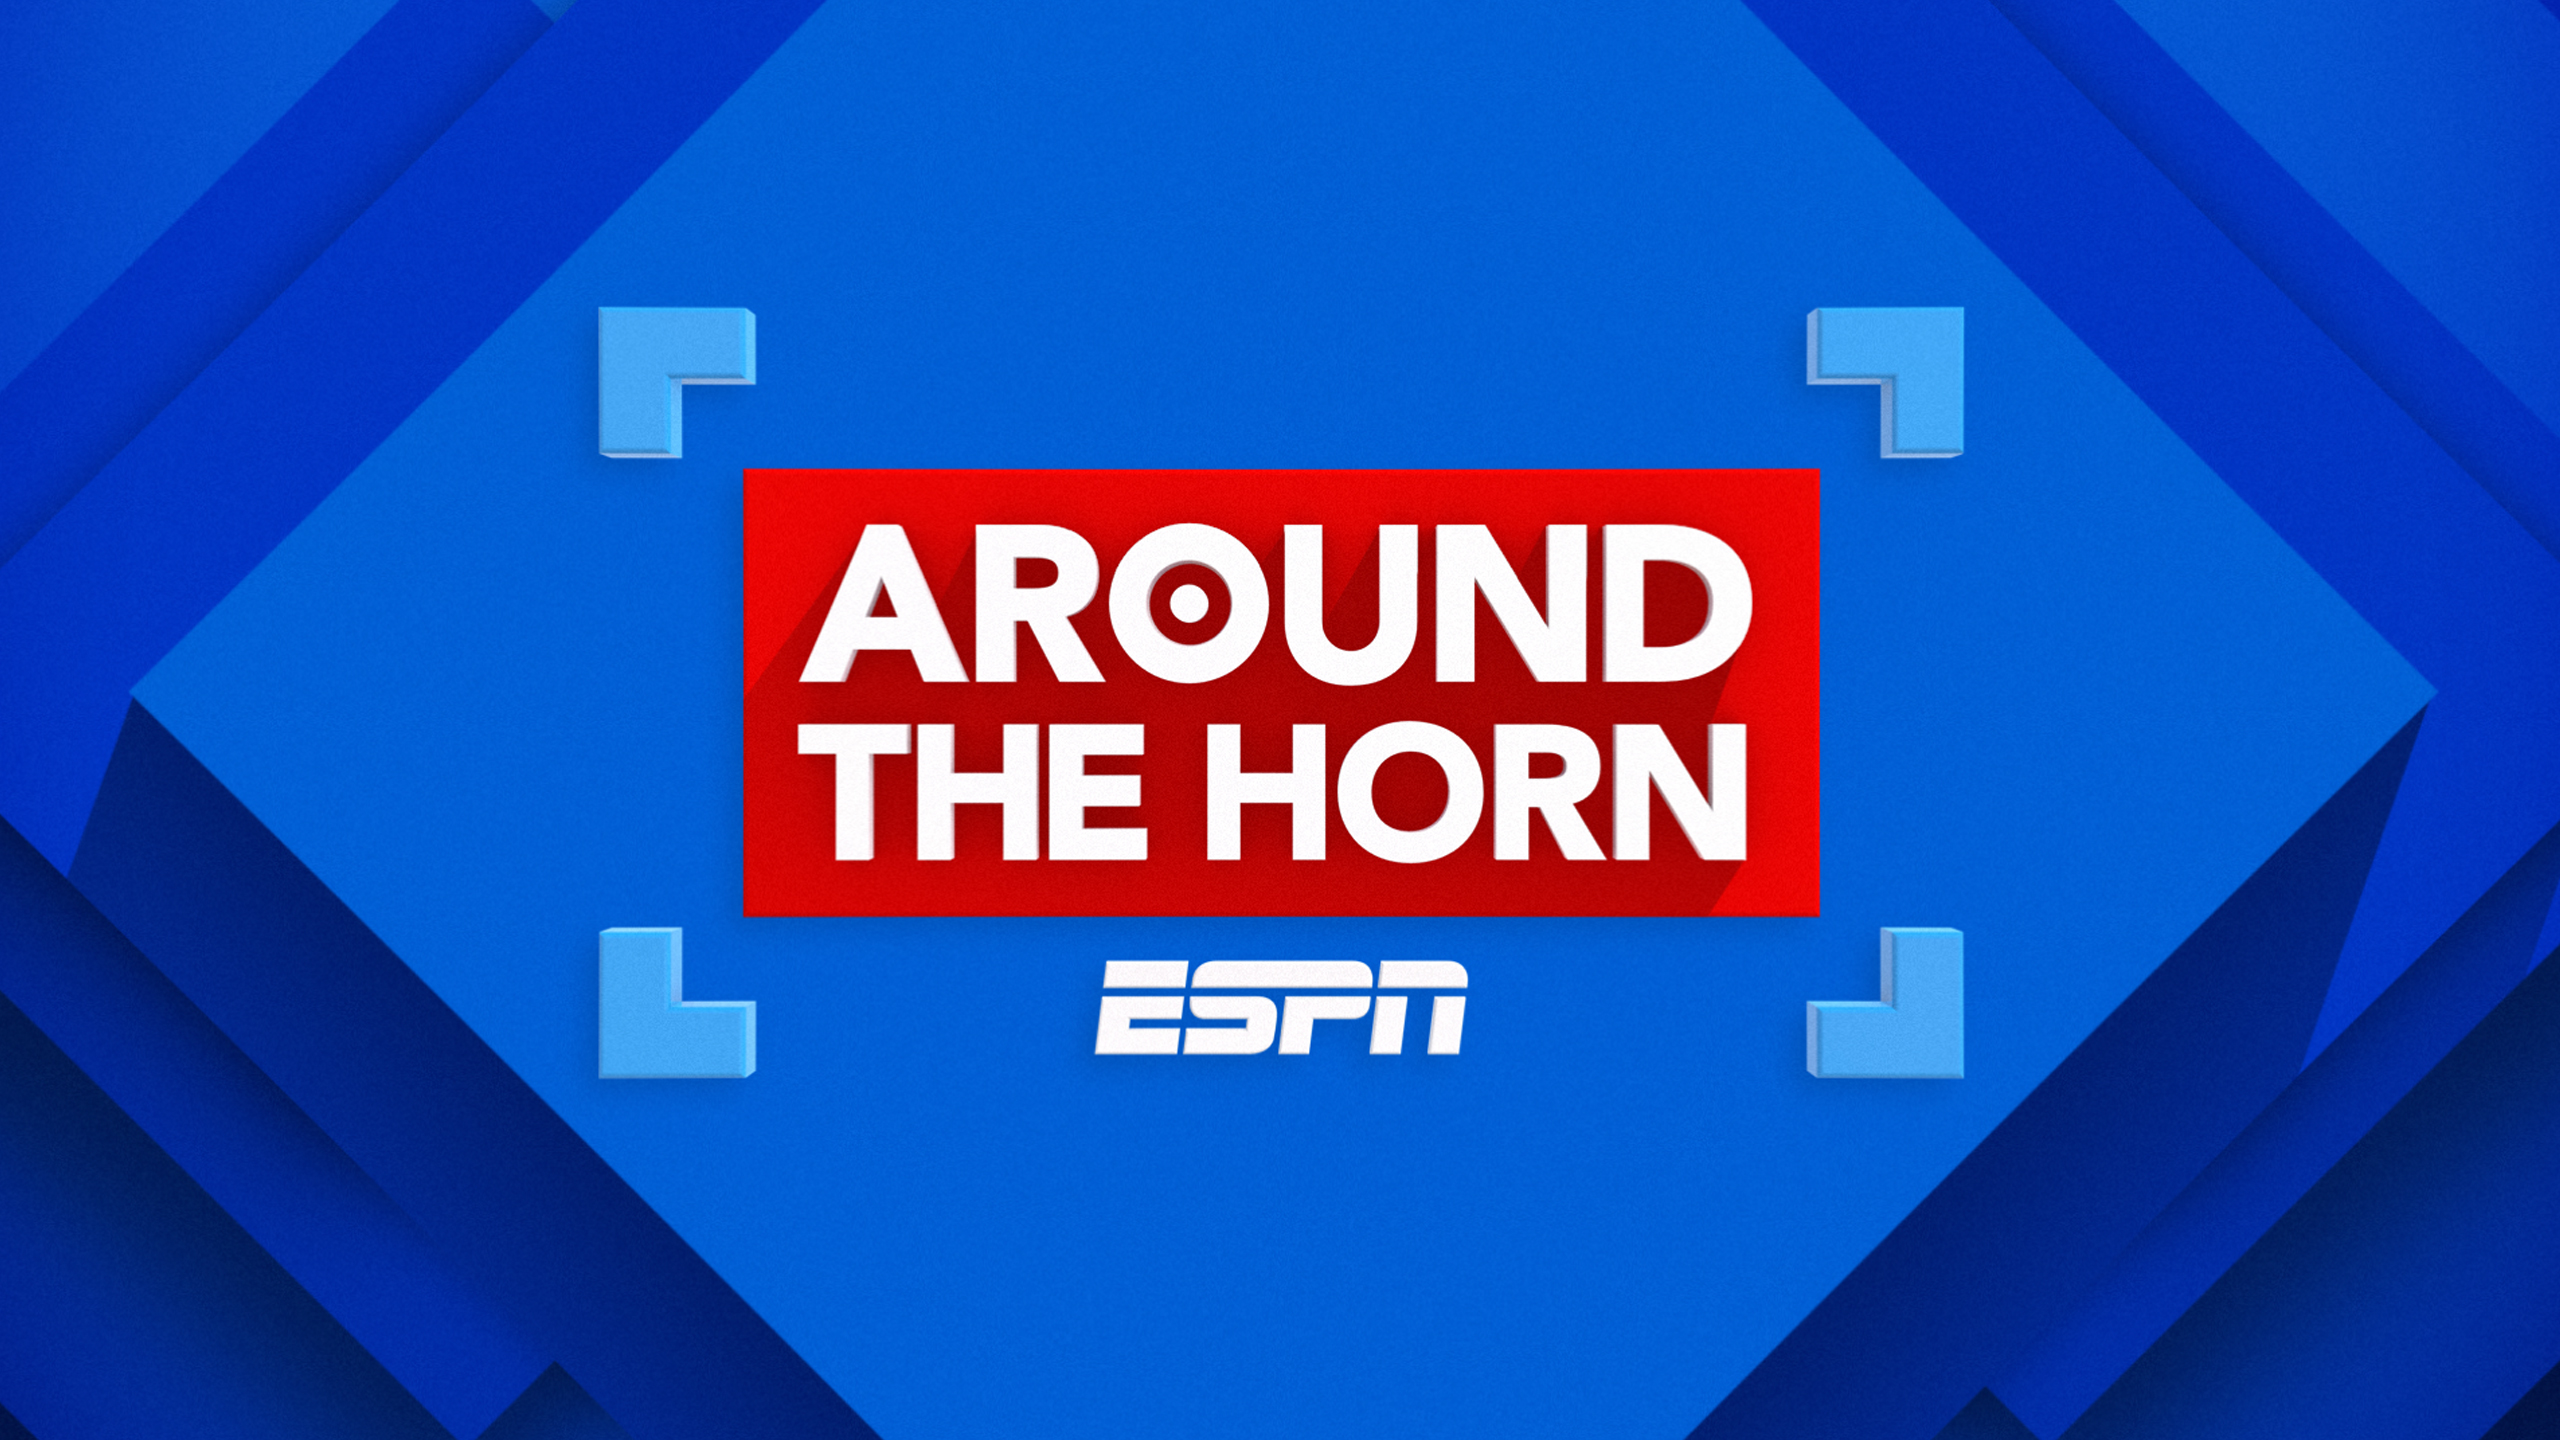 Wed, 2/20 - Around The Horn